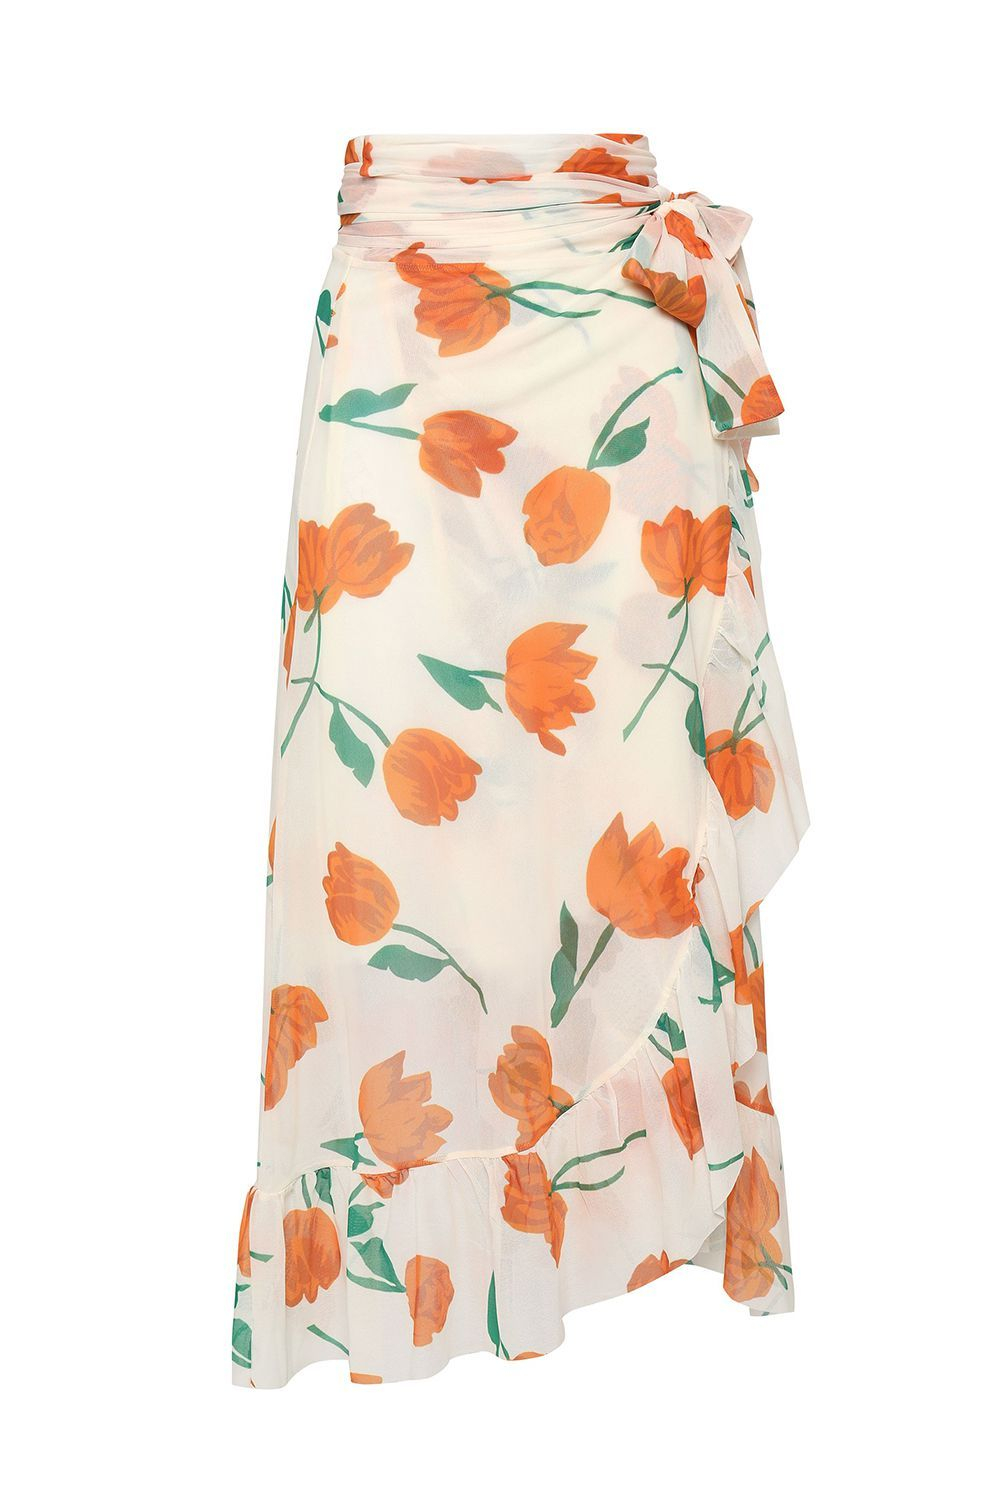 A Floral Wrap Skirt Ganni theoutnet.com $84.00 SHOP IT If you're dying to own a piece by Ganni, you're in luck. This tulip printed wrap skirt is on sale for $84 from $169.